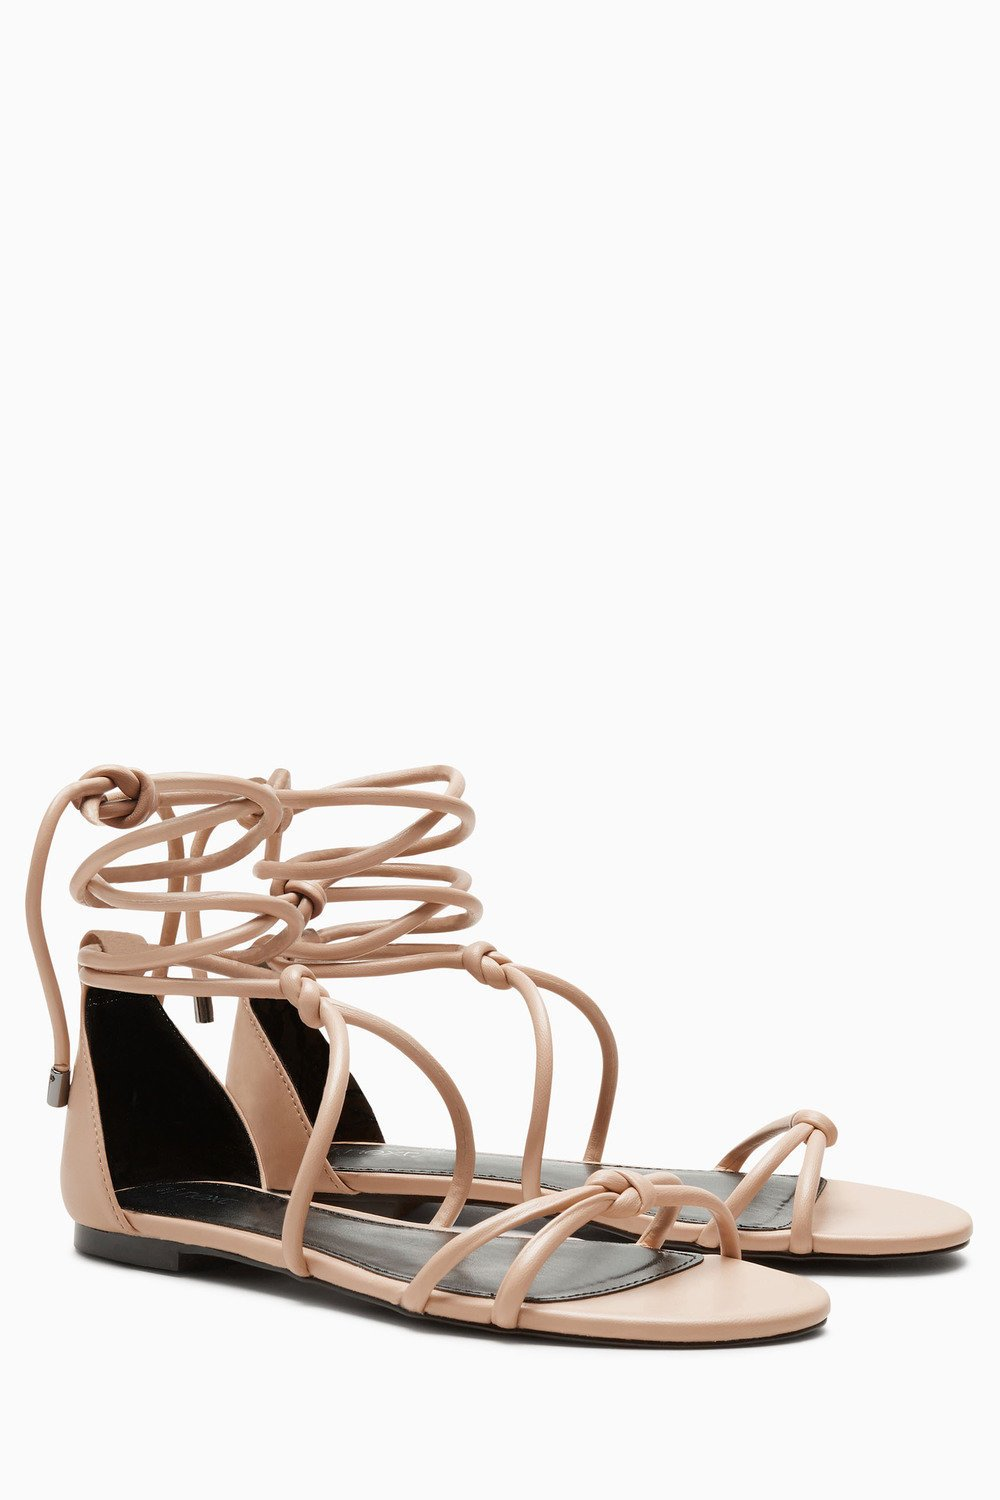 Next Womens/Girls Nude Tube Knot Sandals